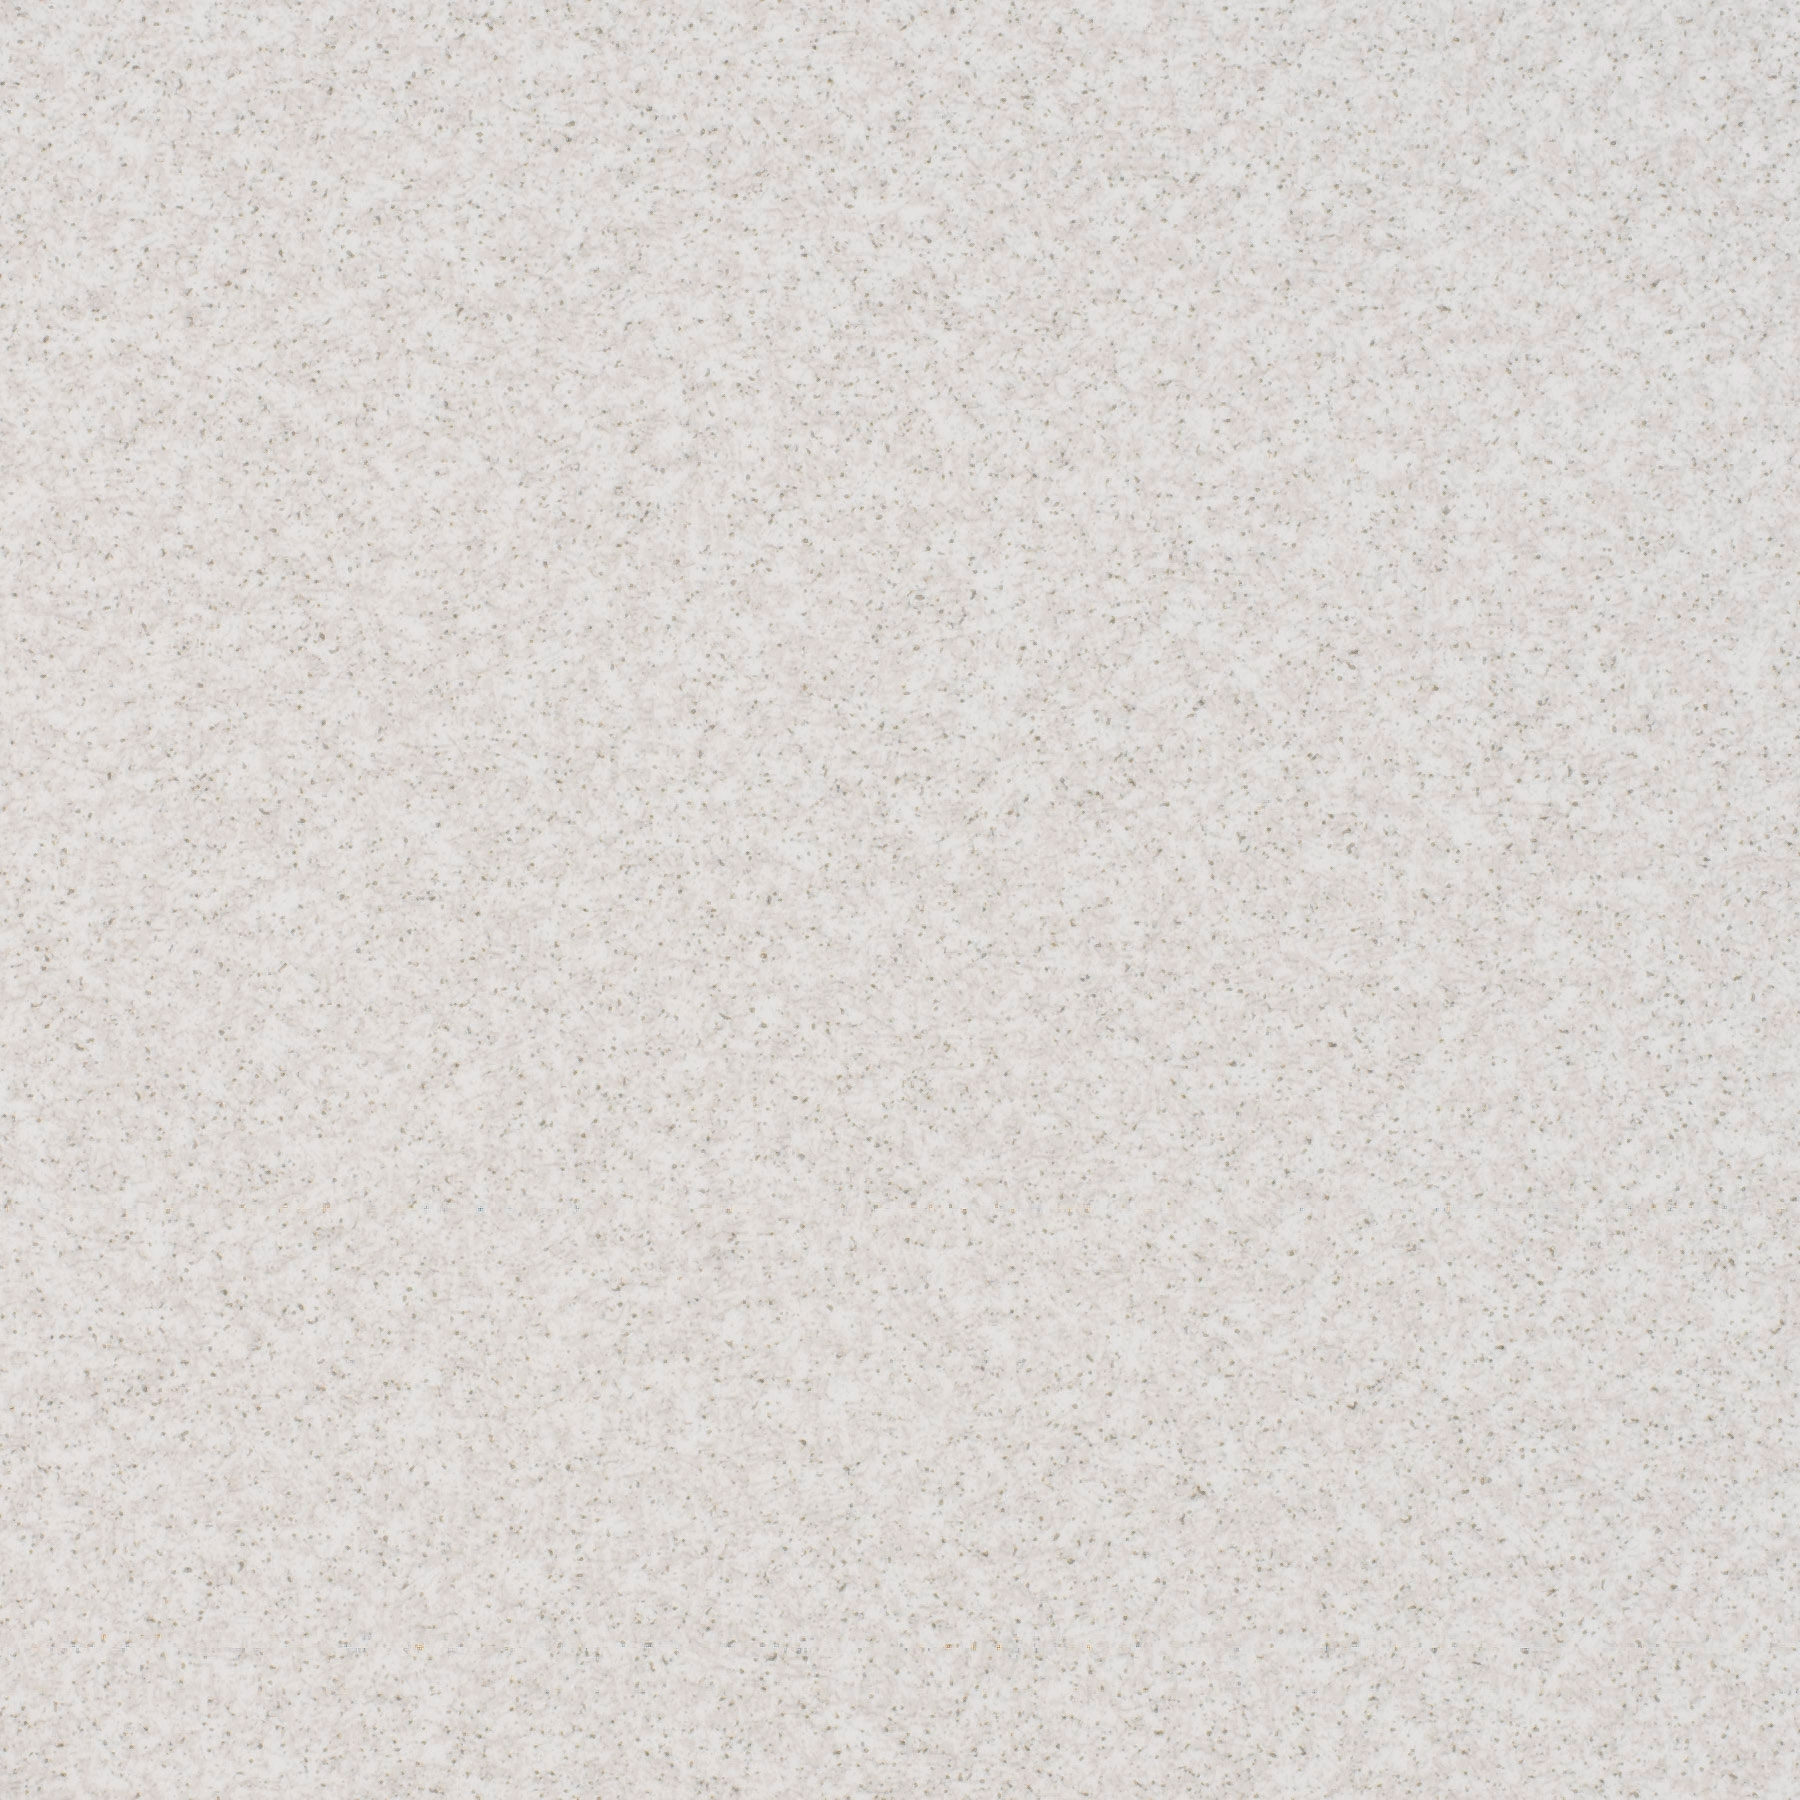 Studio White Dust high resolution swatch